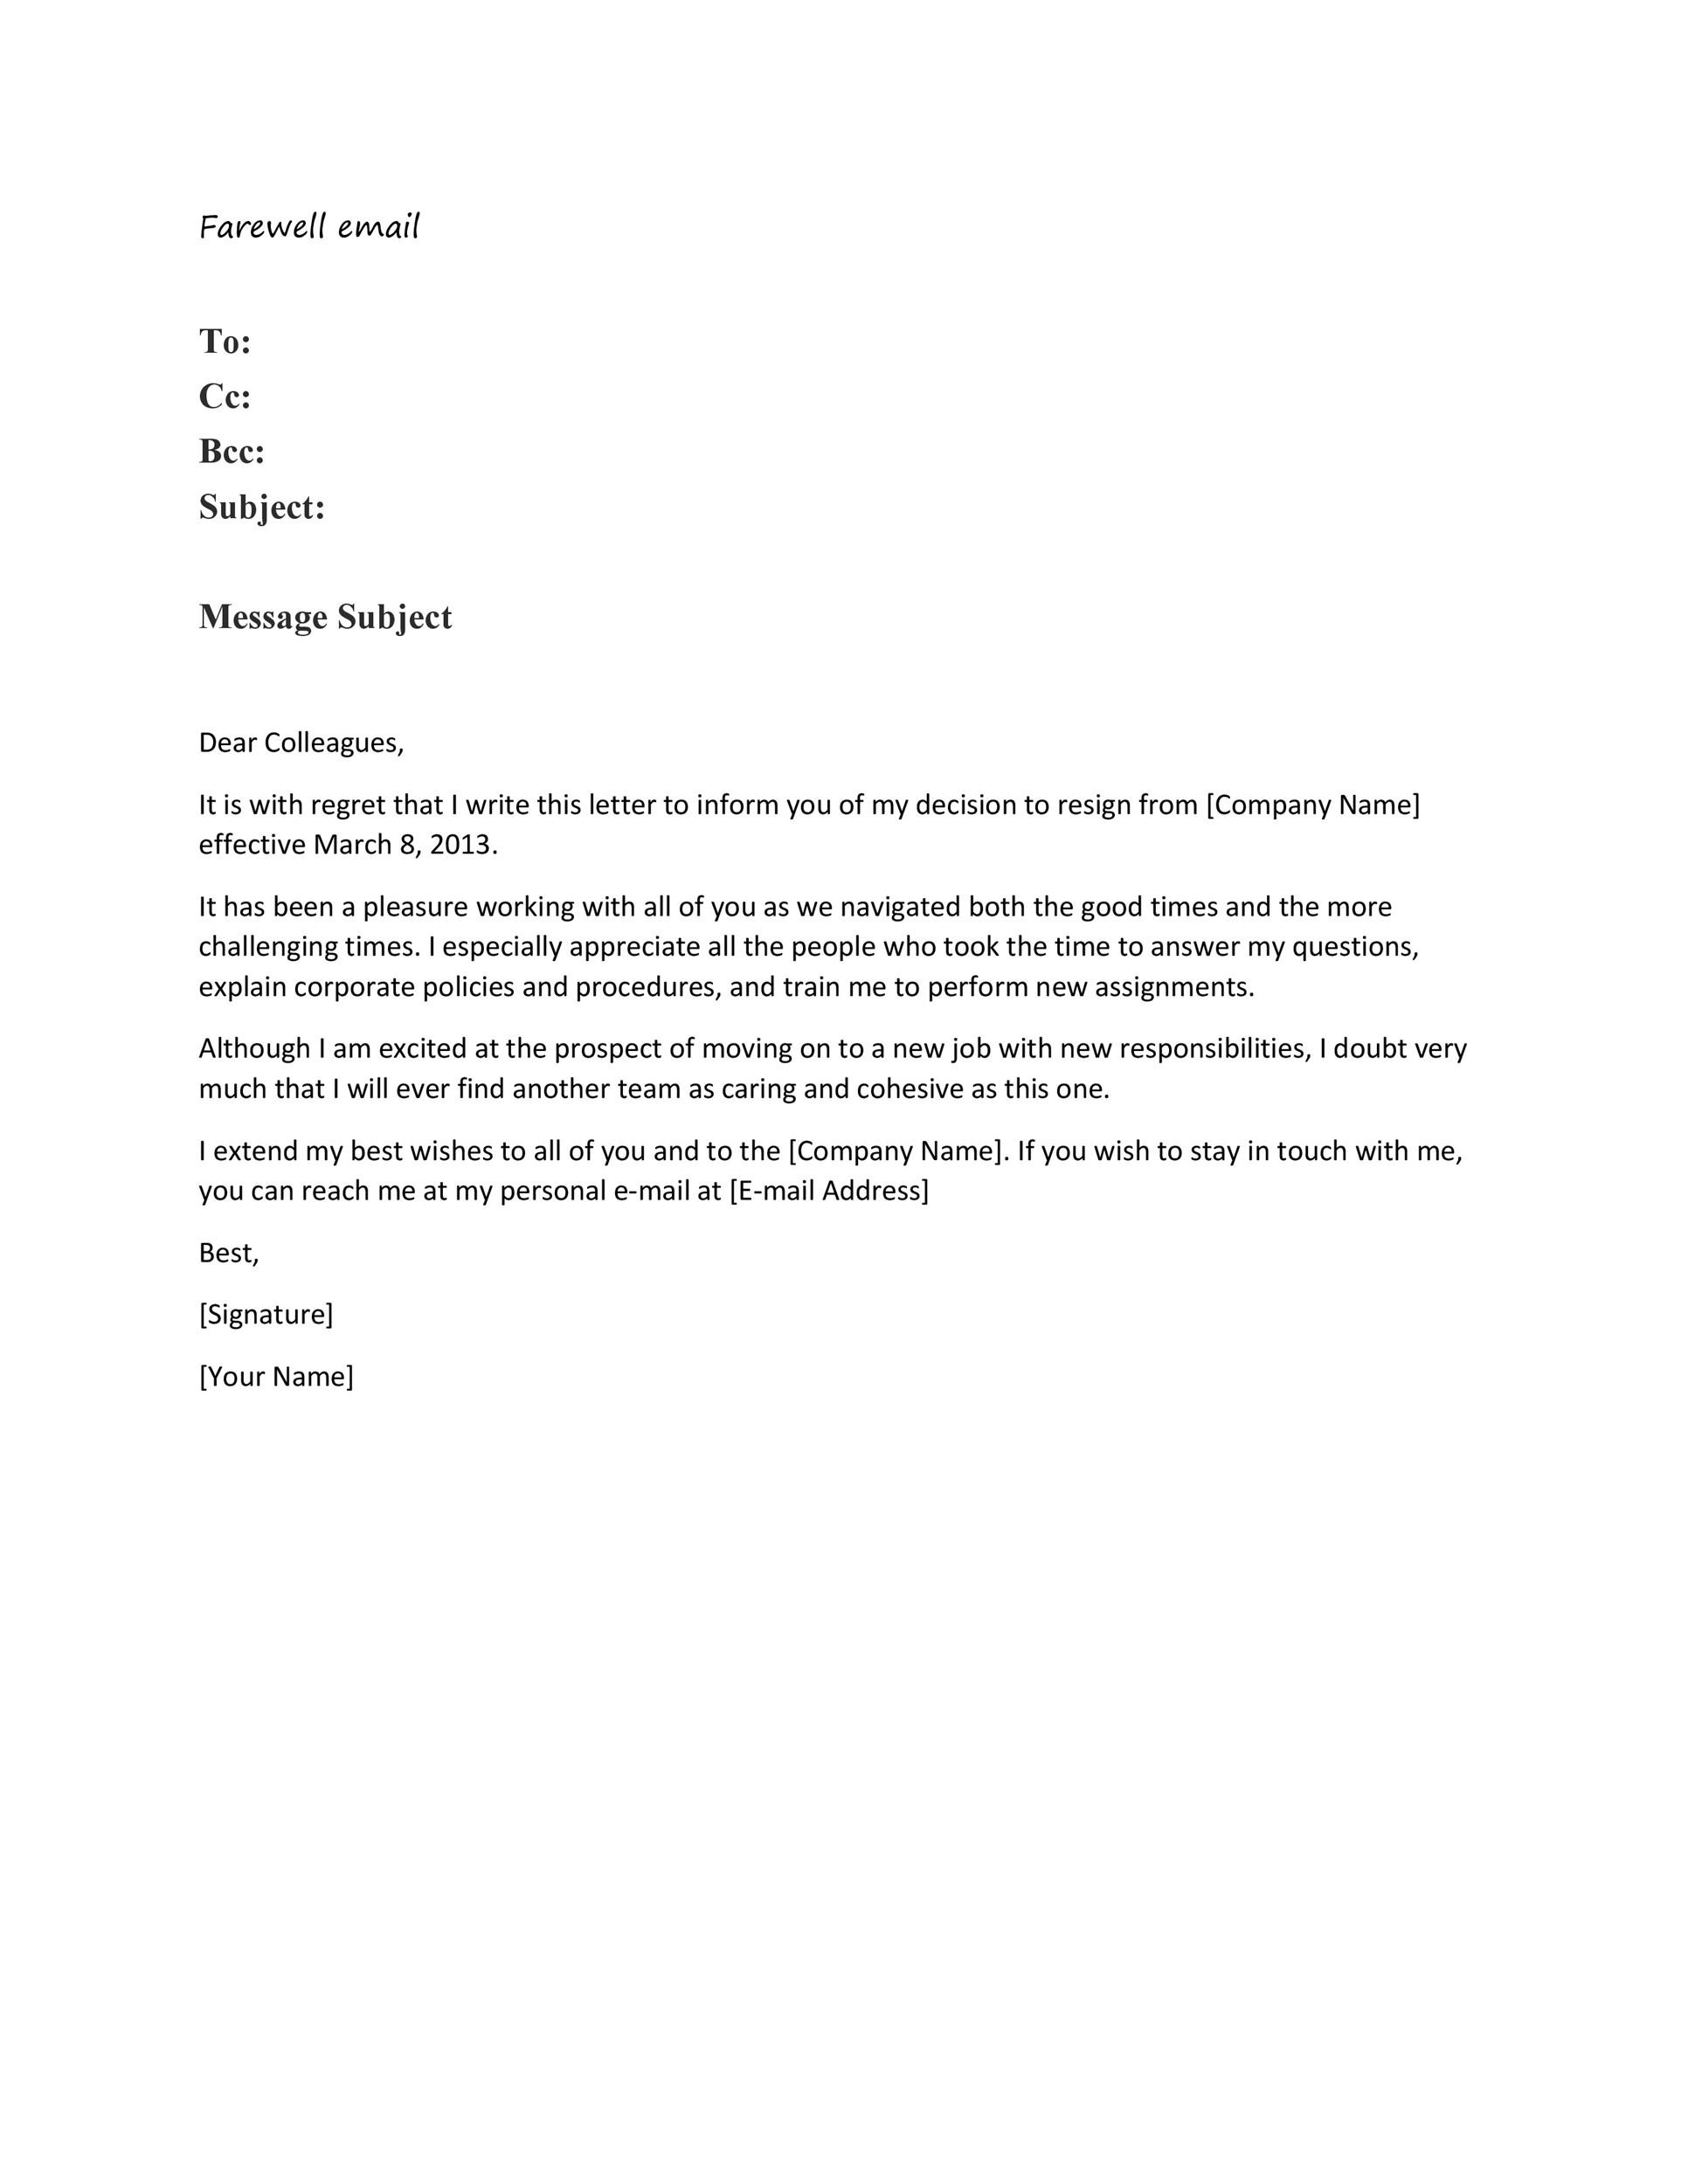 Free farewell email template 20